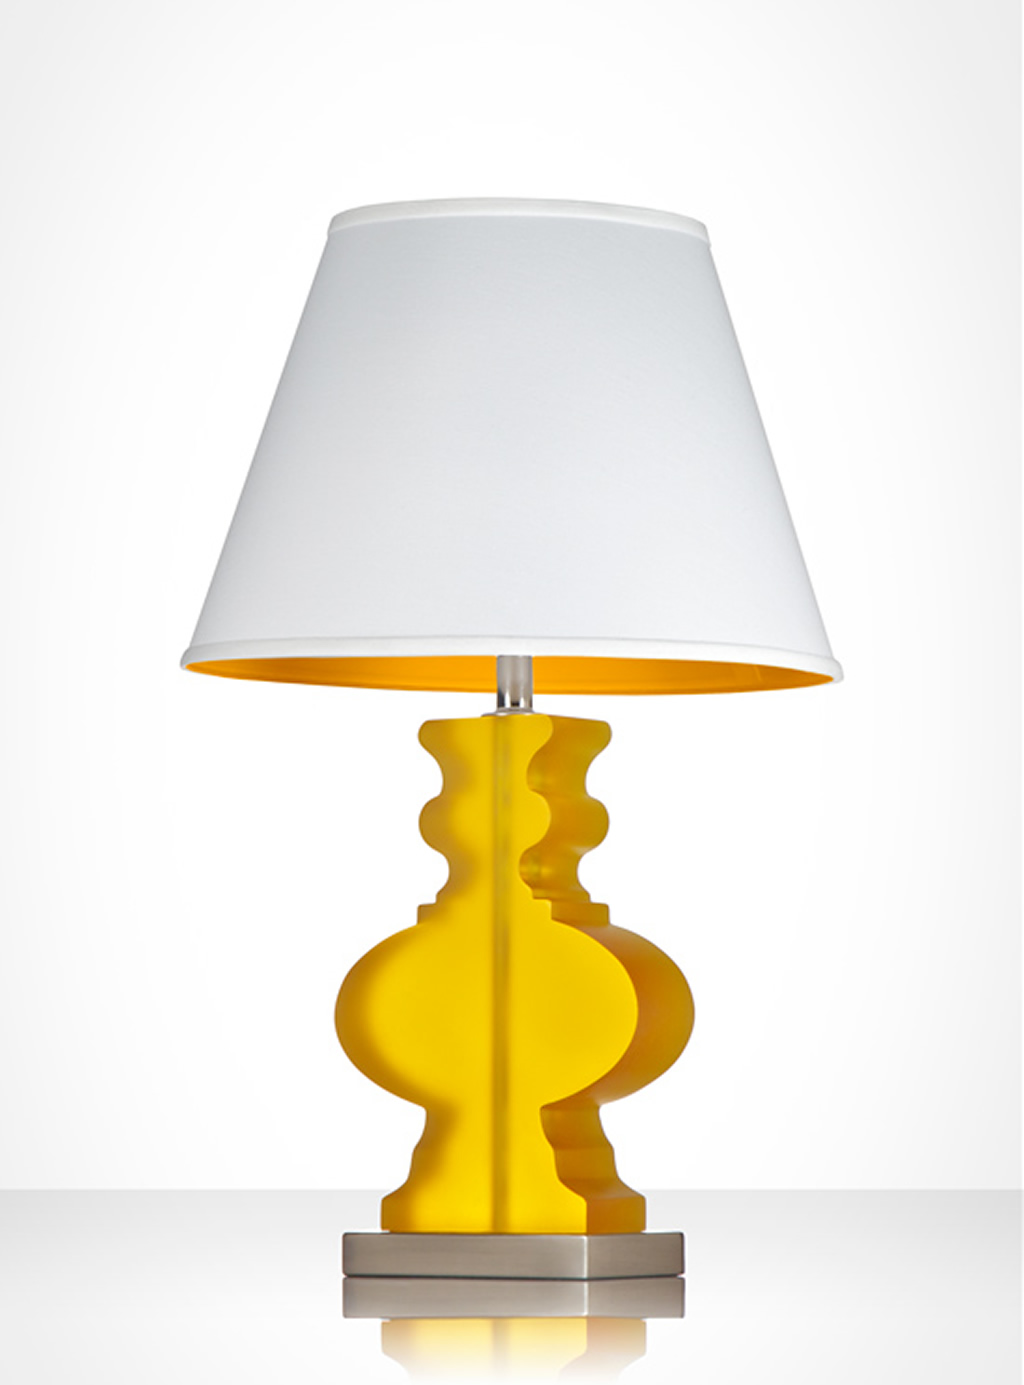 Designer lamps illumination for cool ambiance warisan lighting give stylish lights geotapseo Image collections